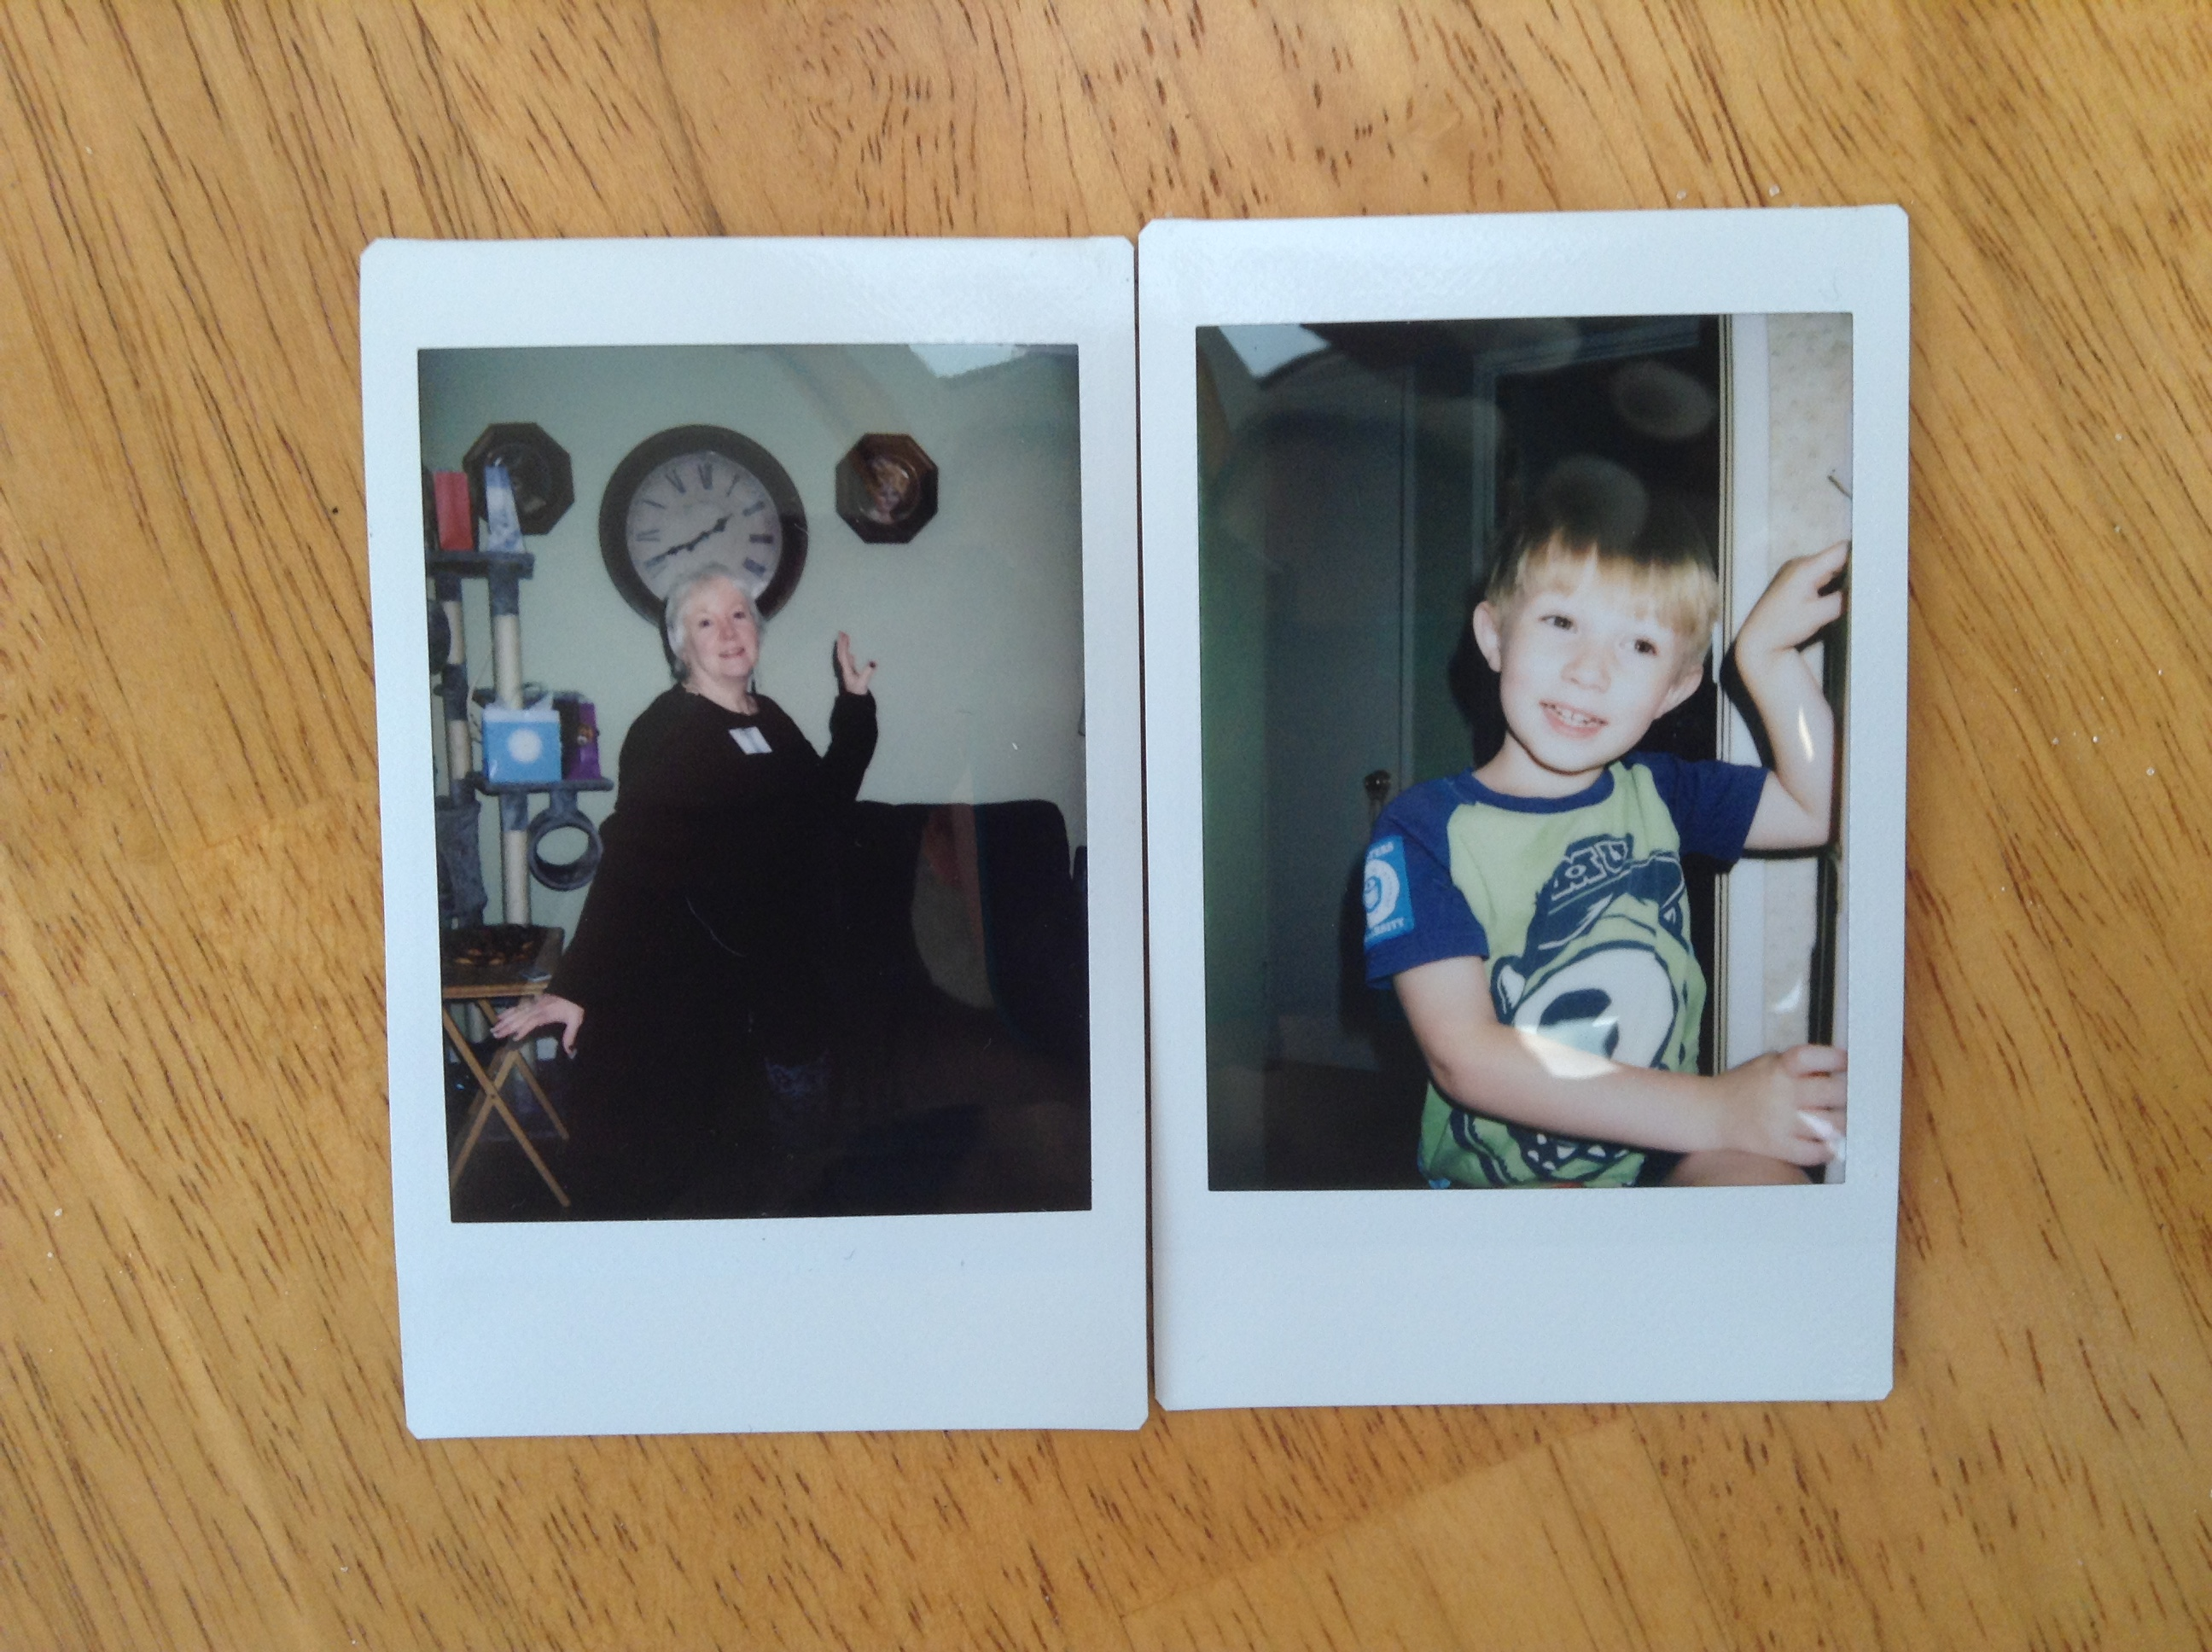 Here Is A Sample Of The Photos One My Mug Shot Glamour And Other Grandson Cheesing It Up For Camera Quality Pretty Good As Far